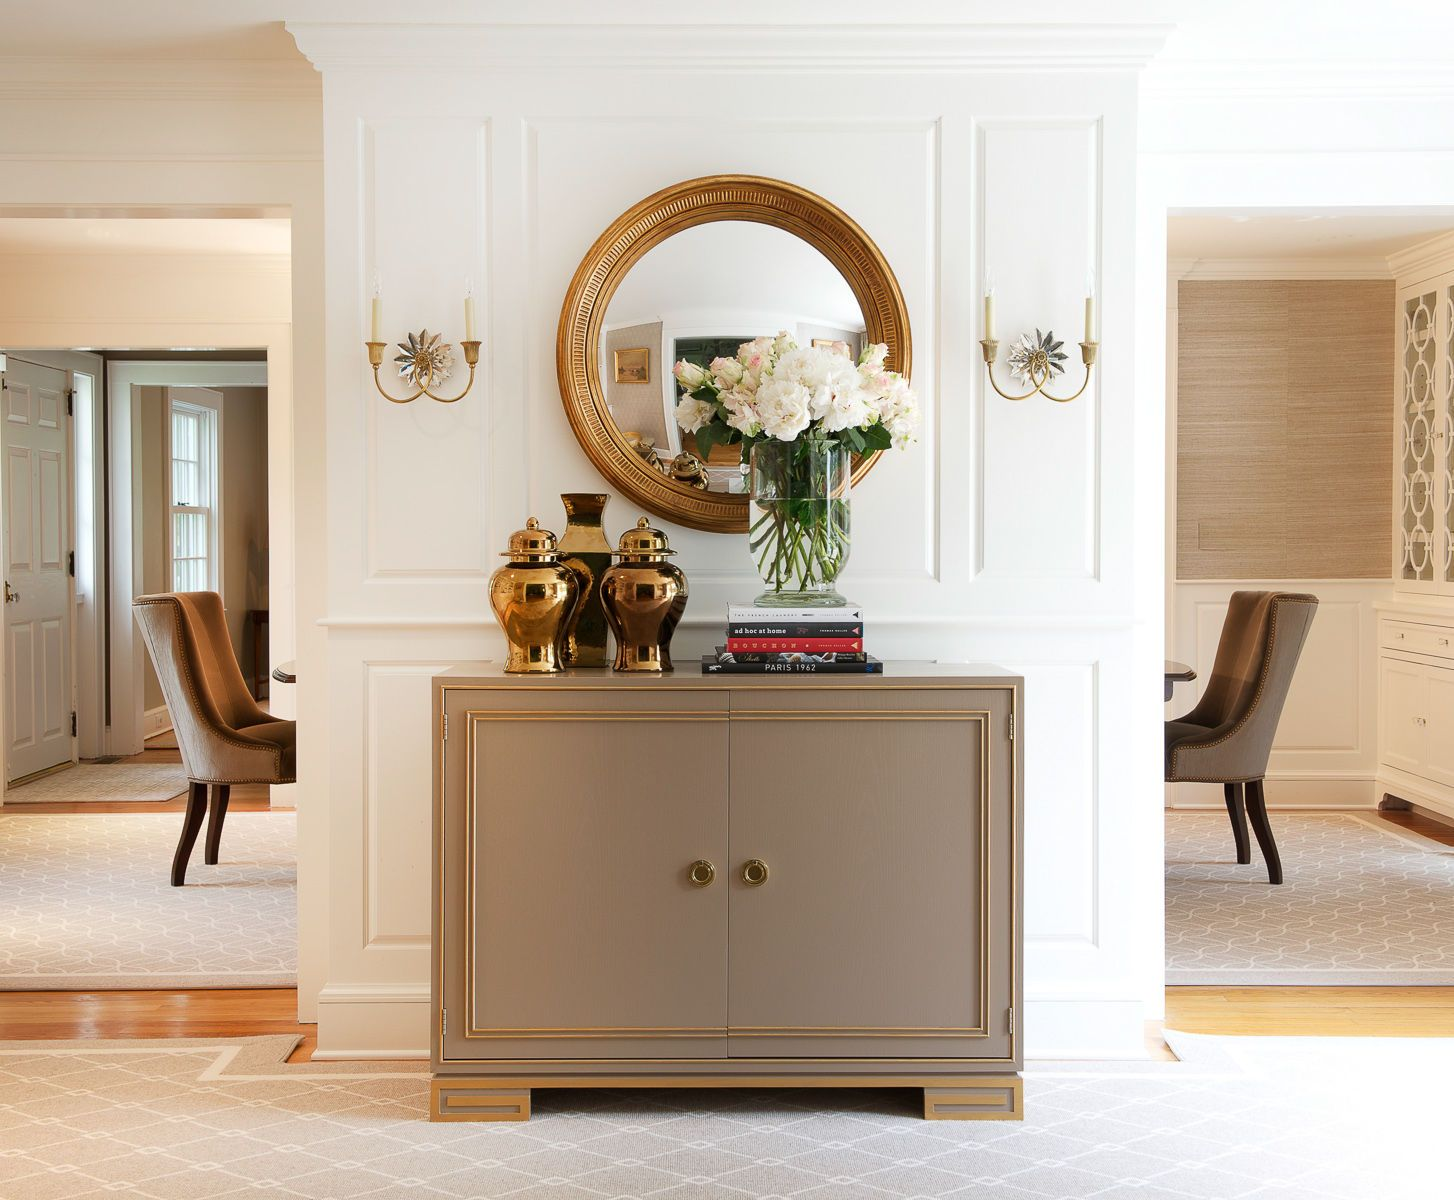 Foyer Chest With Mirror : Chest in the entryway jane beiles photography foyer